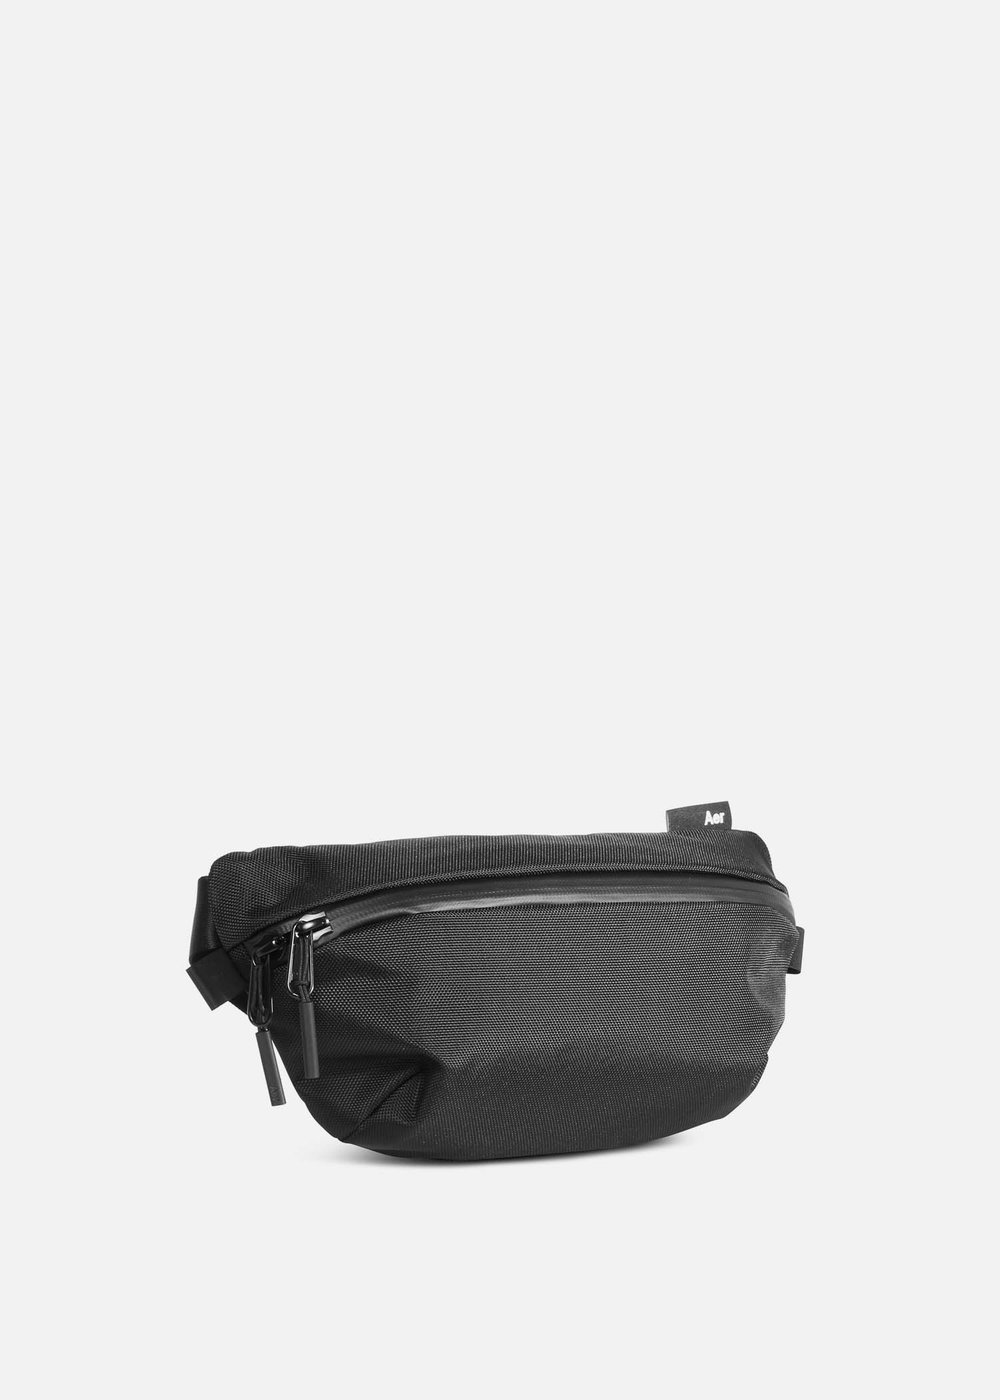 Aer Sling Bag Gym Work Shoulder Bag